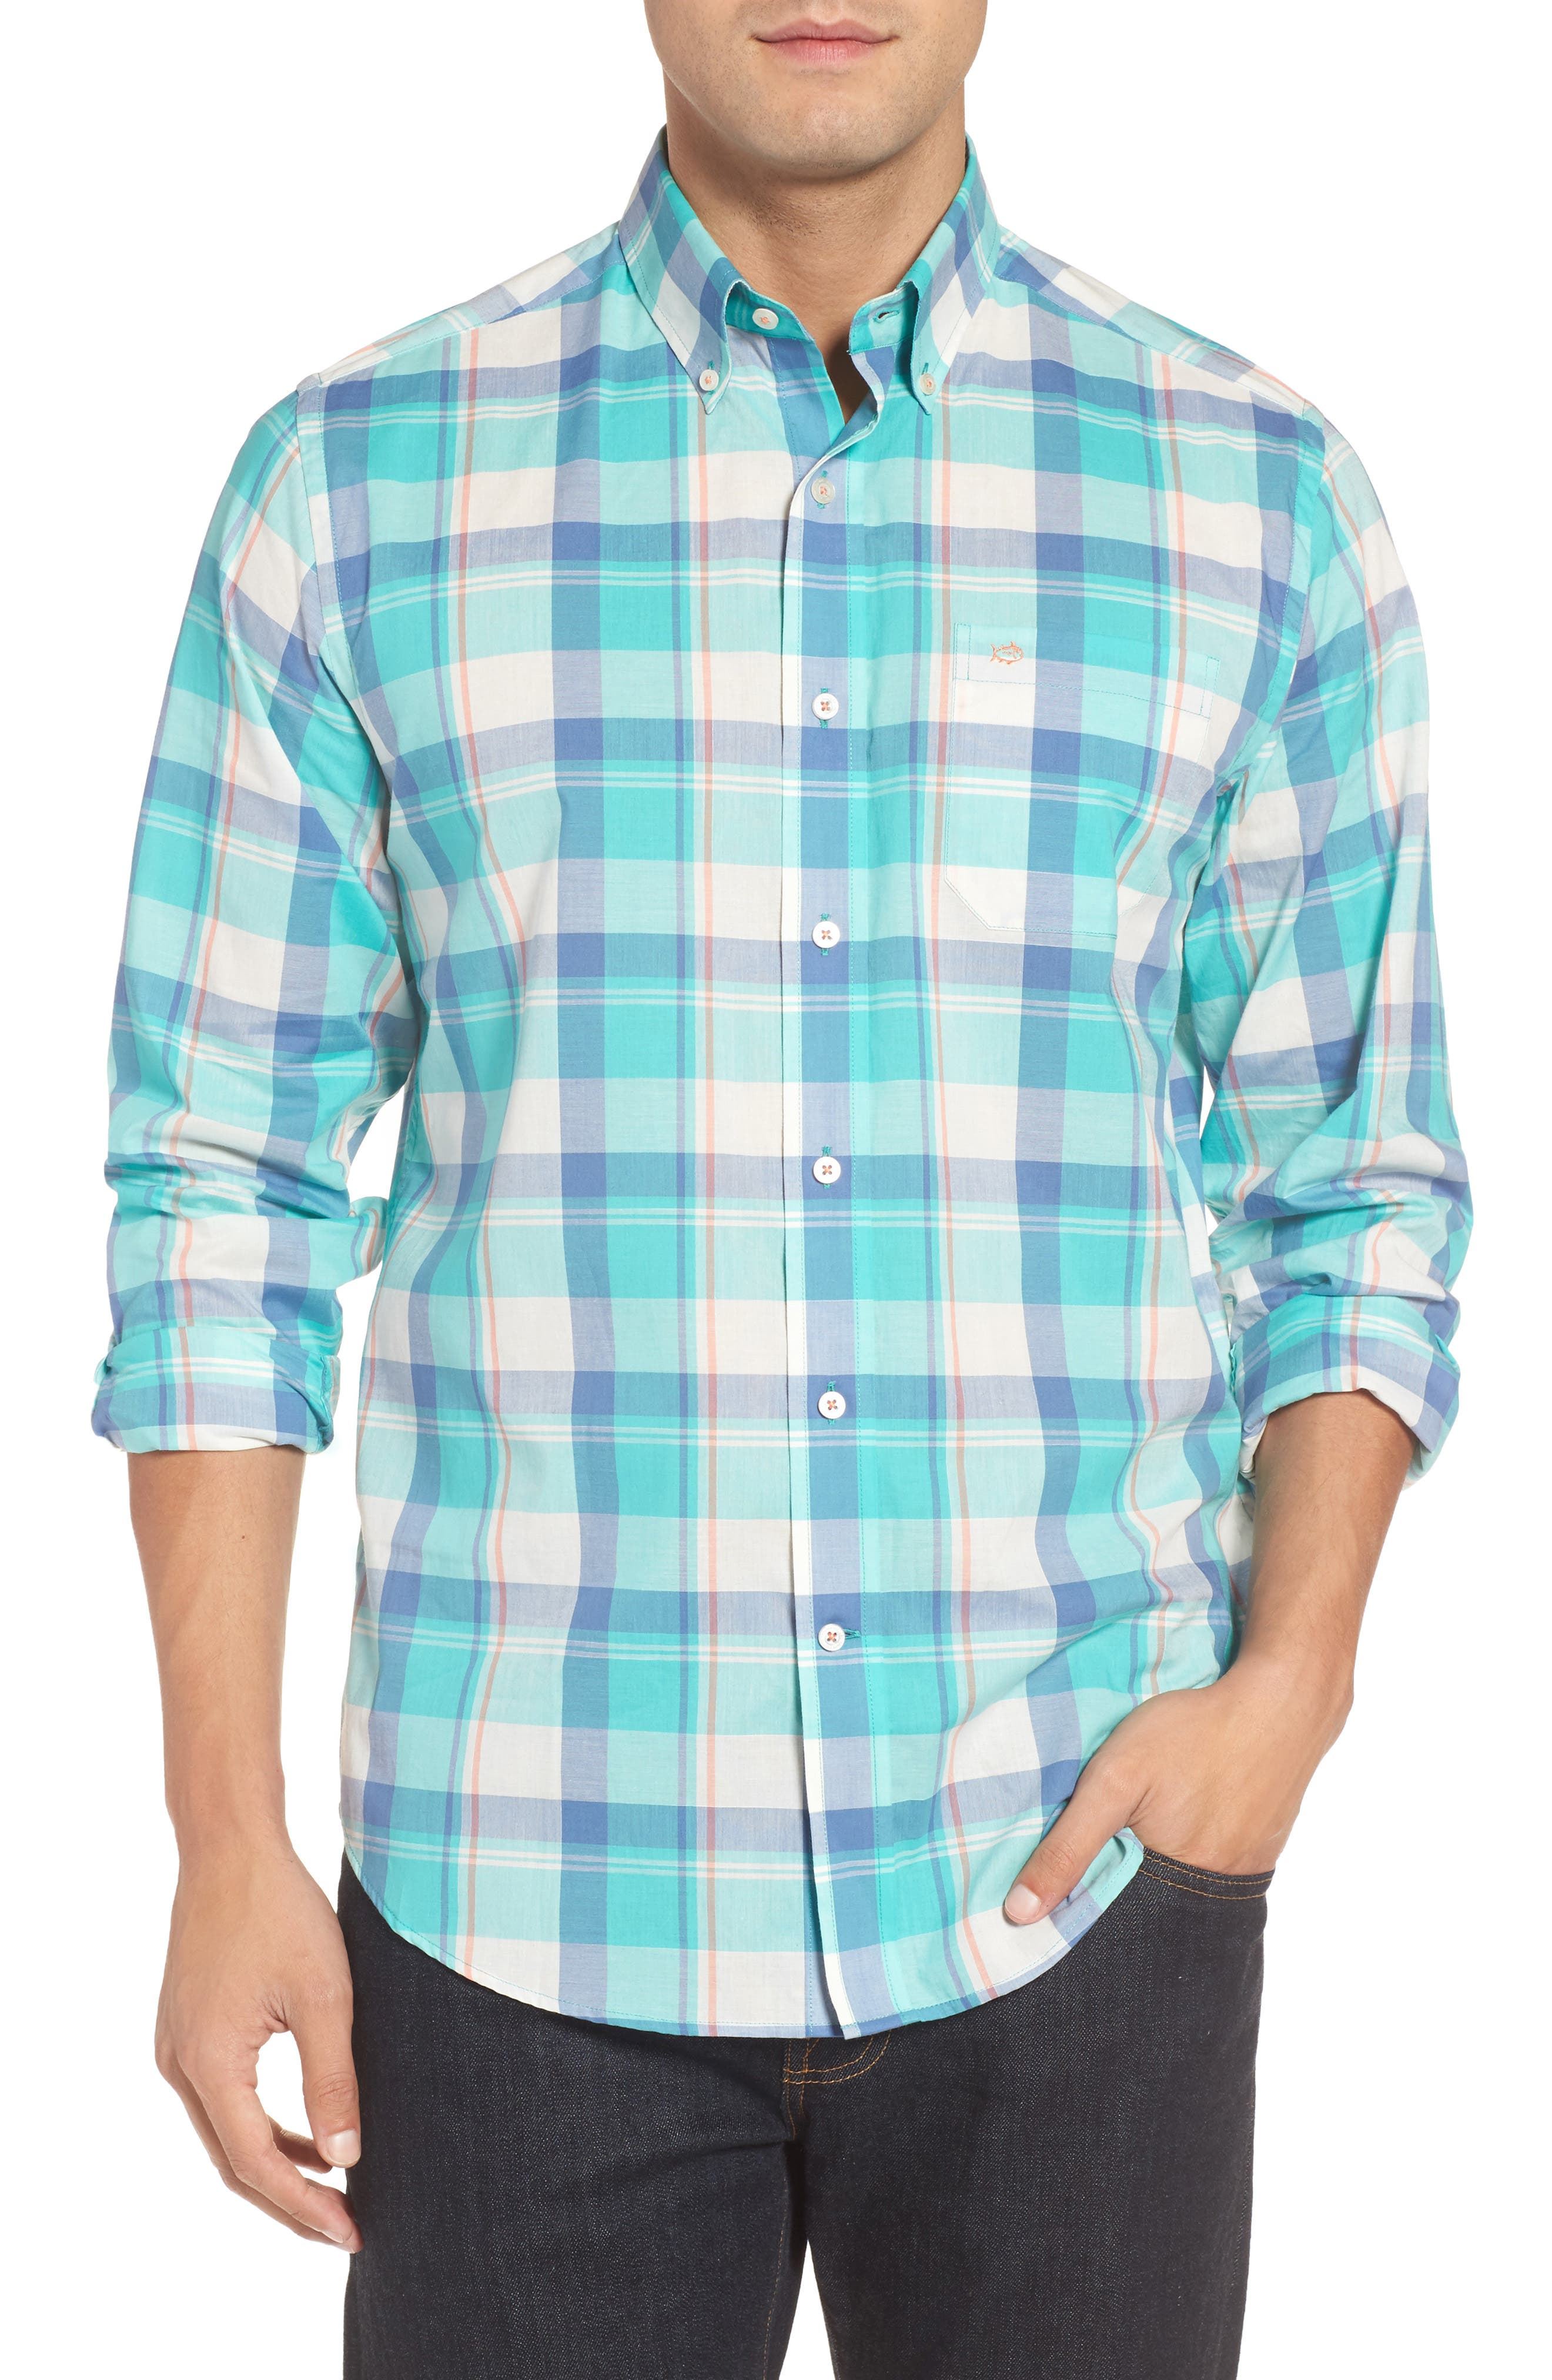 Green Cay Plaid Sport Shirt,                         Main,                         color,